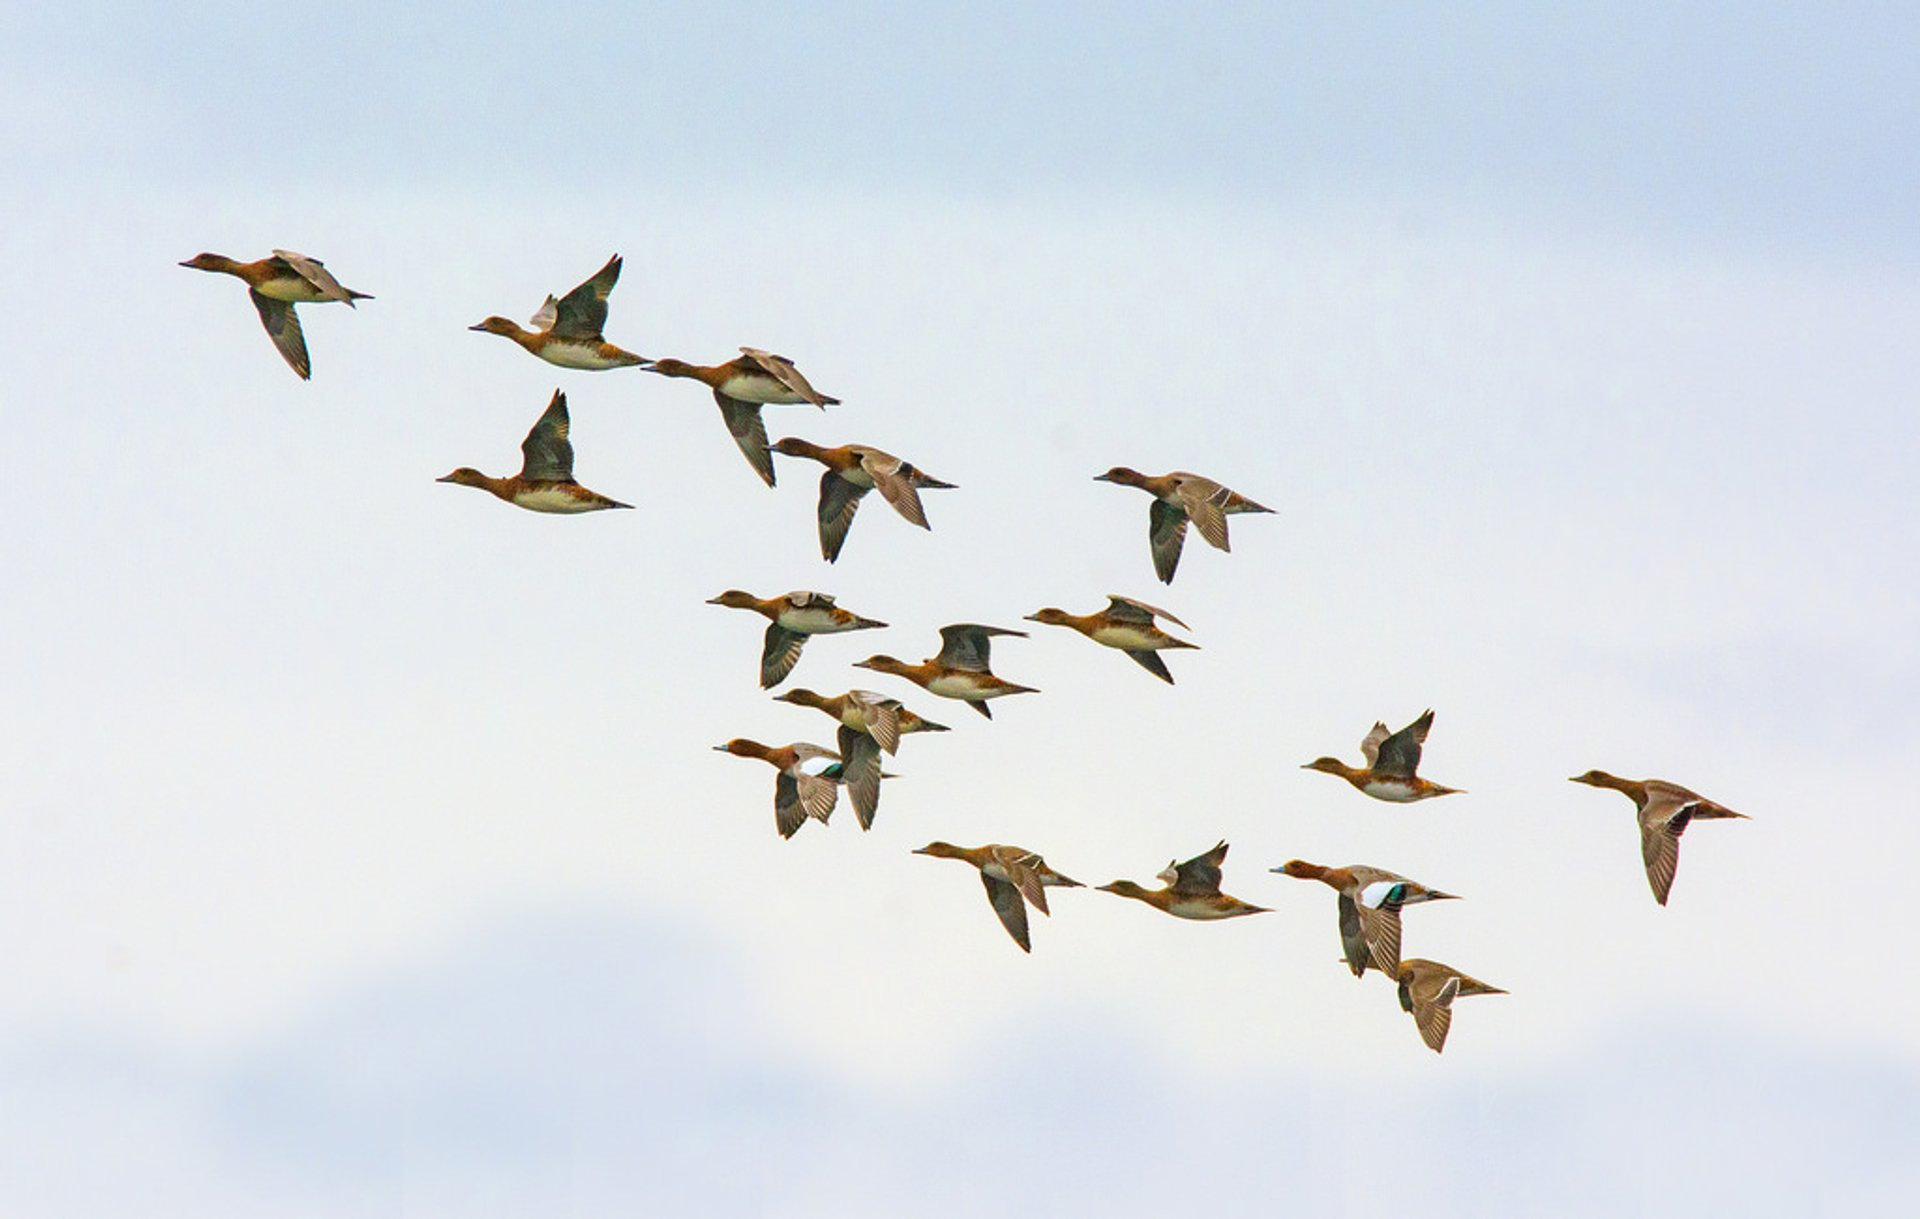 Autumn Migrations in Norway 2020 - Best Time